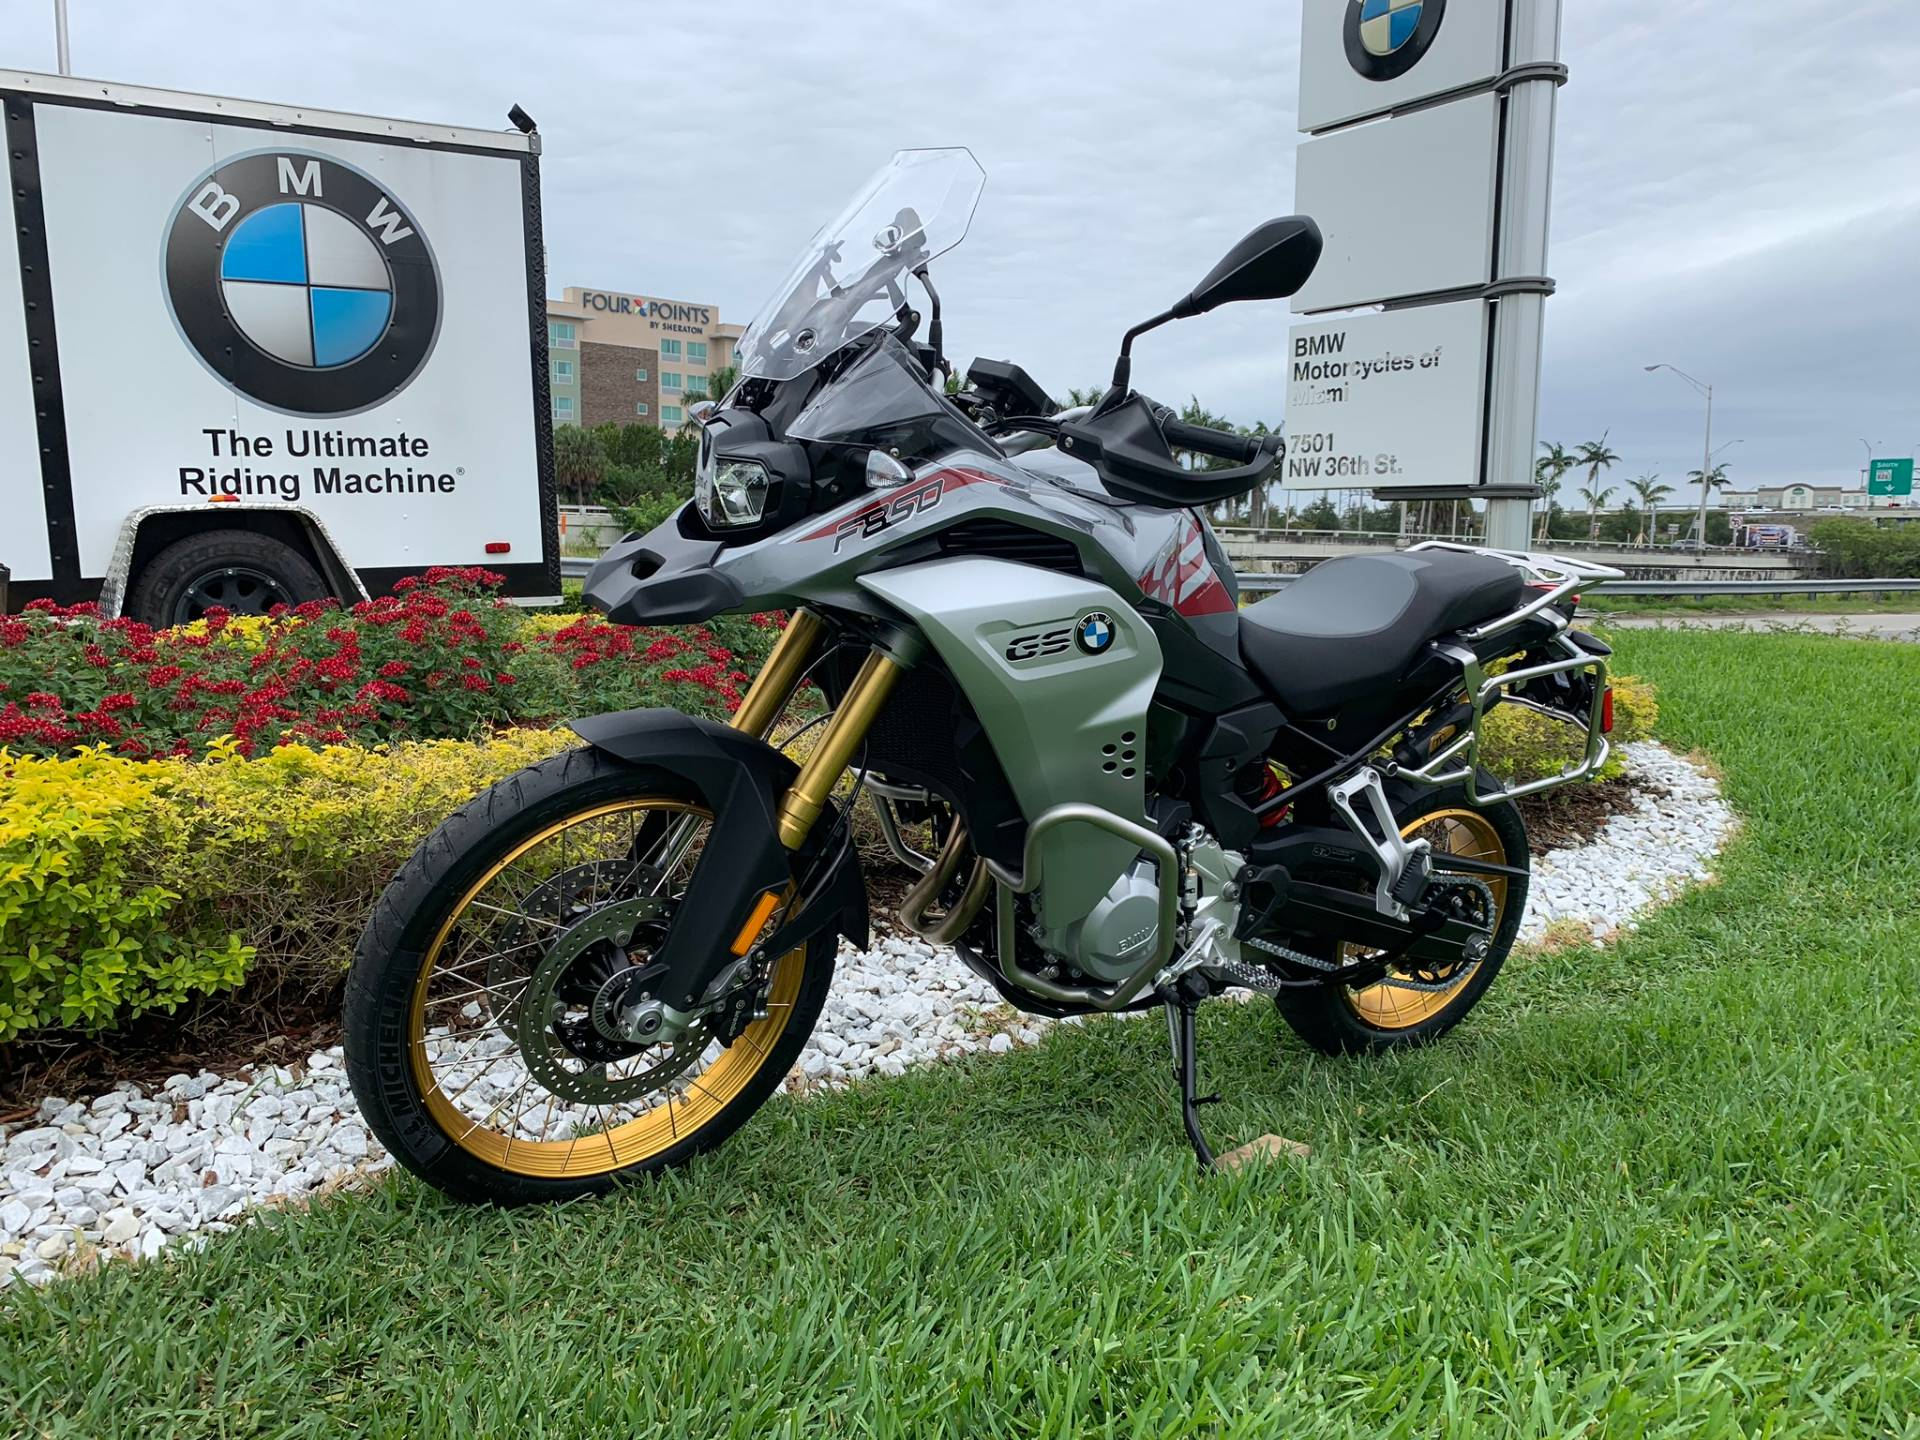 New 2019 BMW F 850 GSA for sale, BMW F 850GSA for sale, BMW Motorcycle F850GSA, new BMW 850 Adventure, Adventure. BMW Motorcycles of Miami, Motorcycles of Miami, Motorcycles Miami, New Motorcycles, Used Motorcycles, pre-owned. #BMWMotorcyclesOfMiami #MotorcyclesOfMiami #MotorcyclesMiami - Photo 7